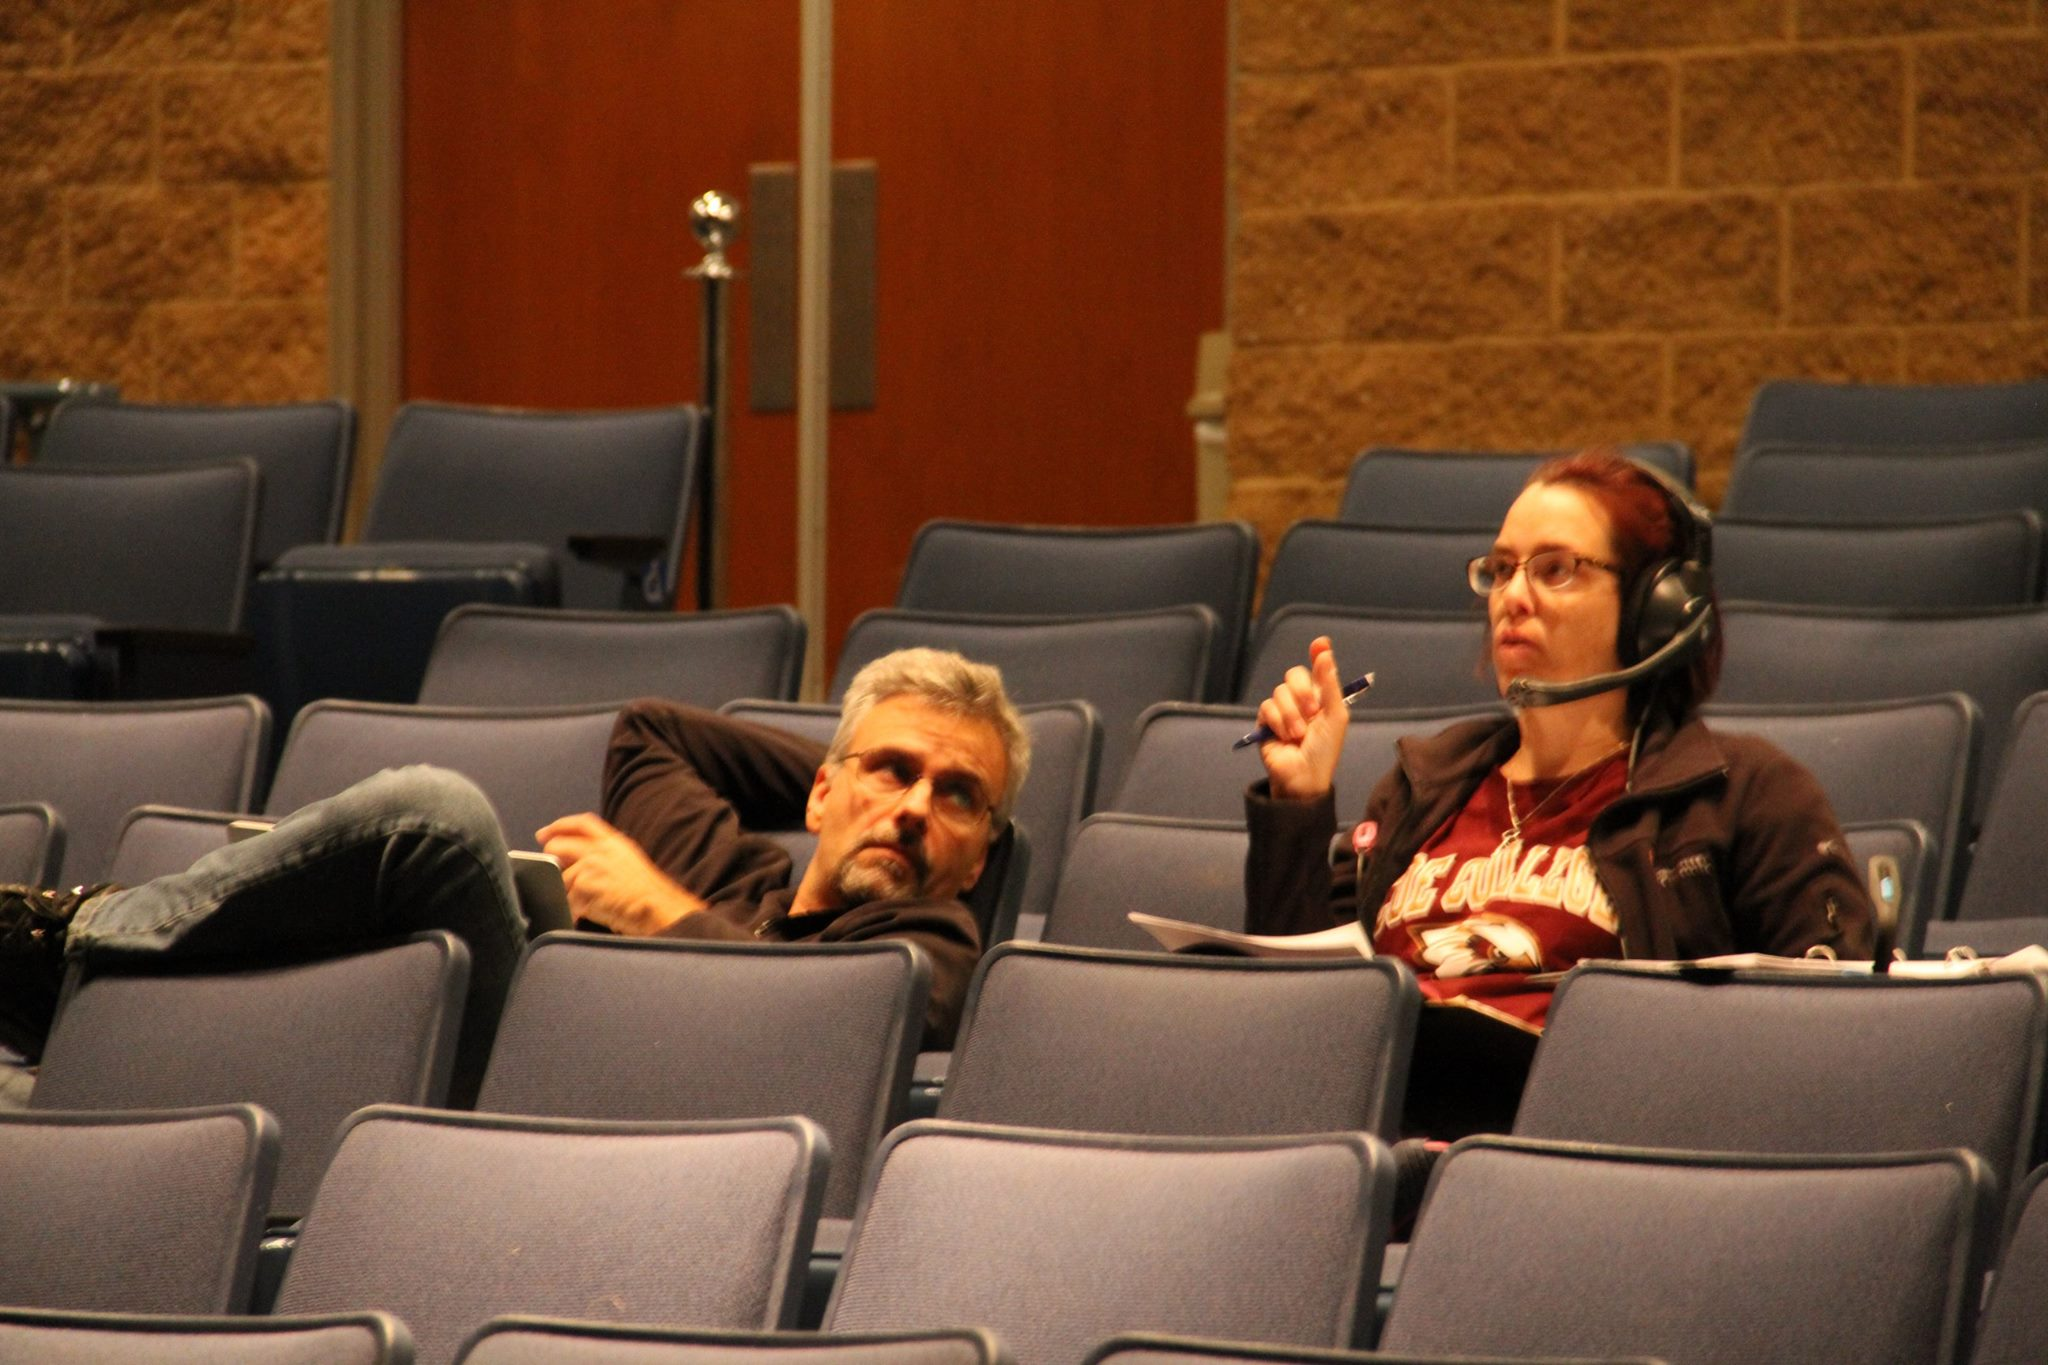 Working with Director, David Rzeszutek on a production at Saginaw Valley State University